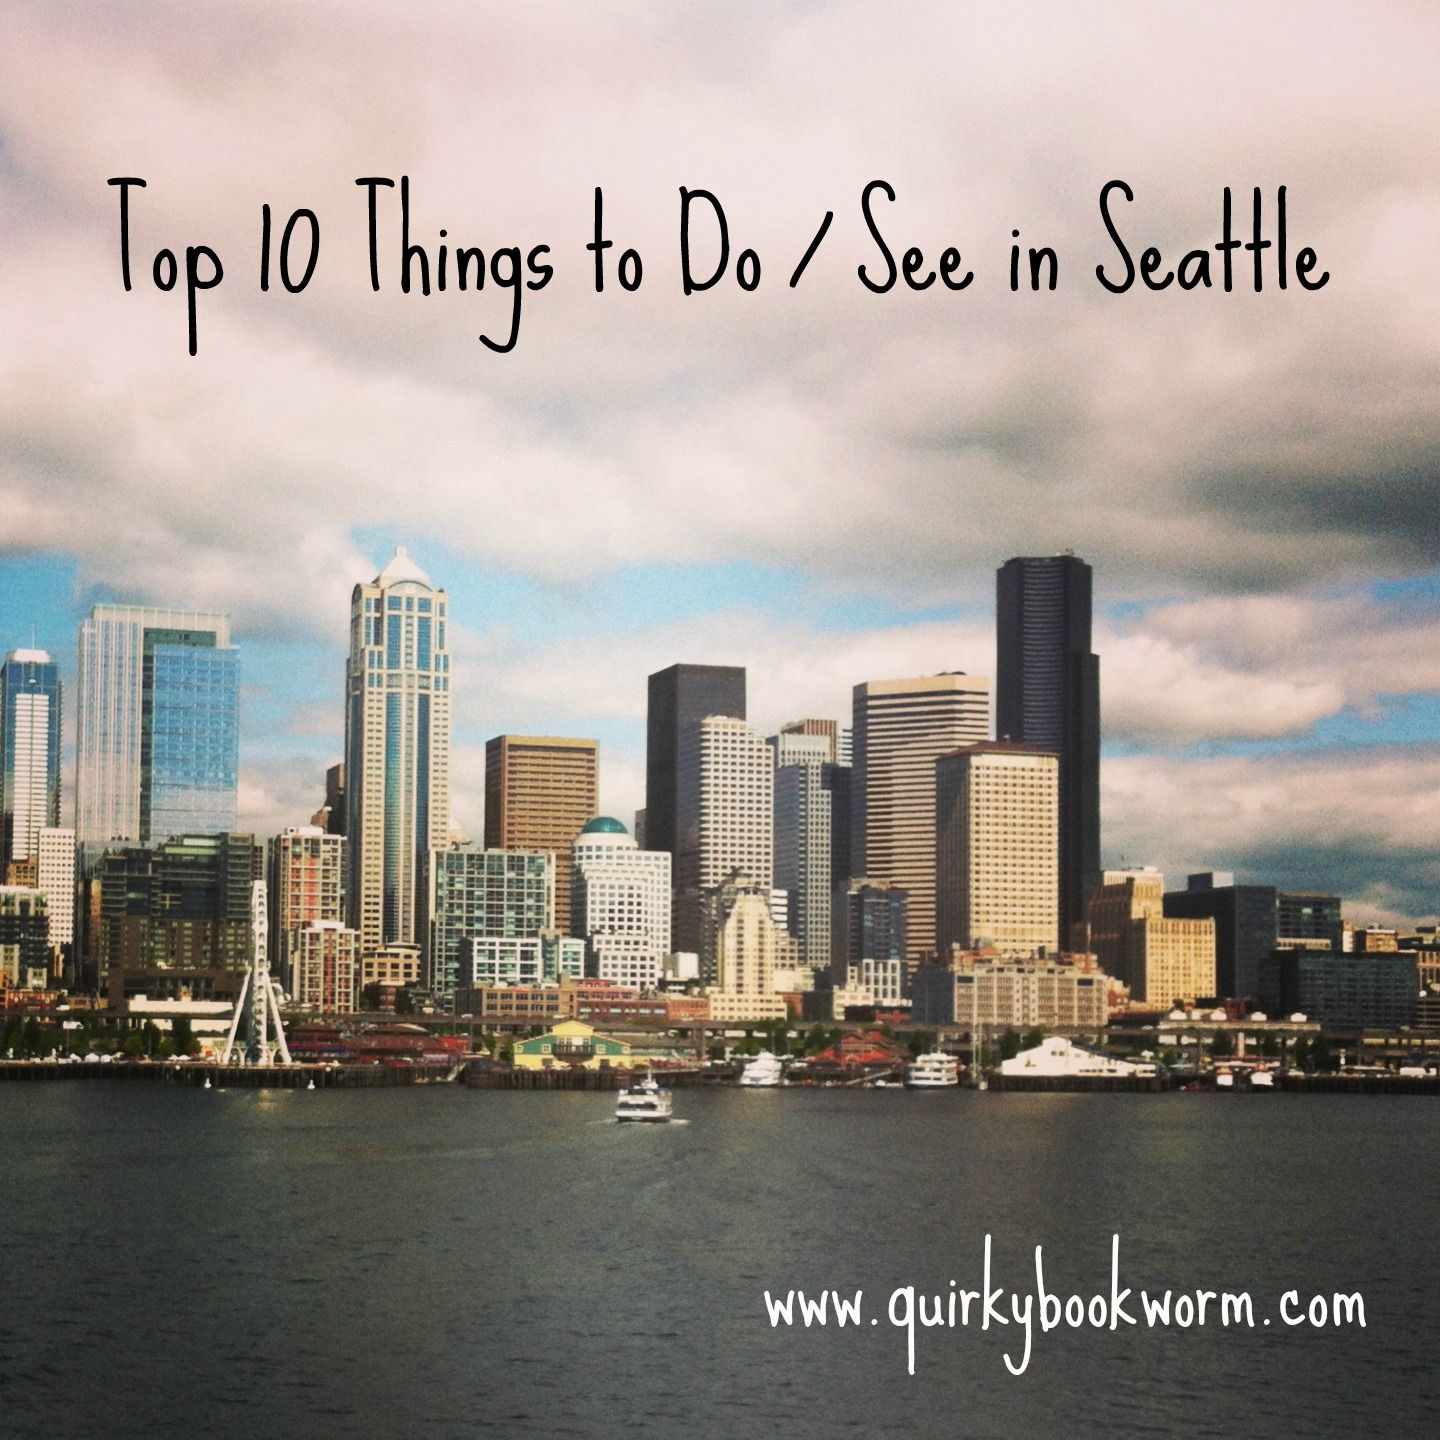 Quirky Bookworm Top 10 Things To Do And See In Seattle